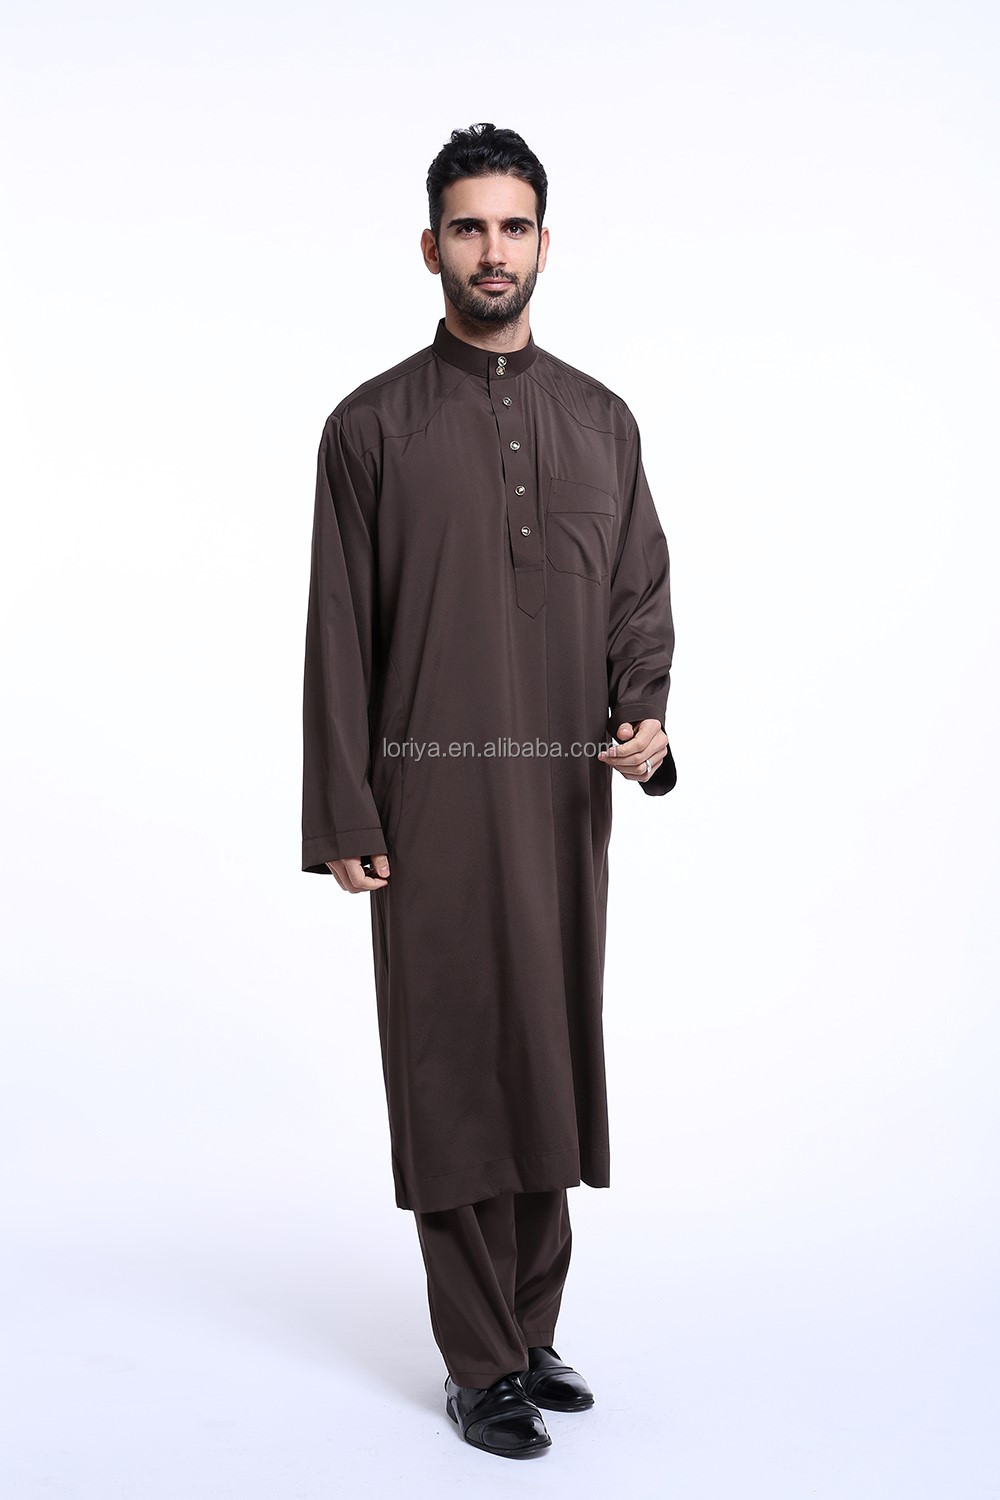 Muslim long abaya dress for men latest design new islamic kaftan high quality men abaya